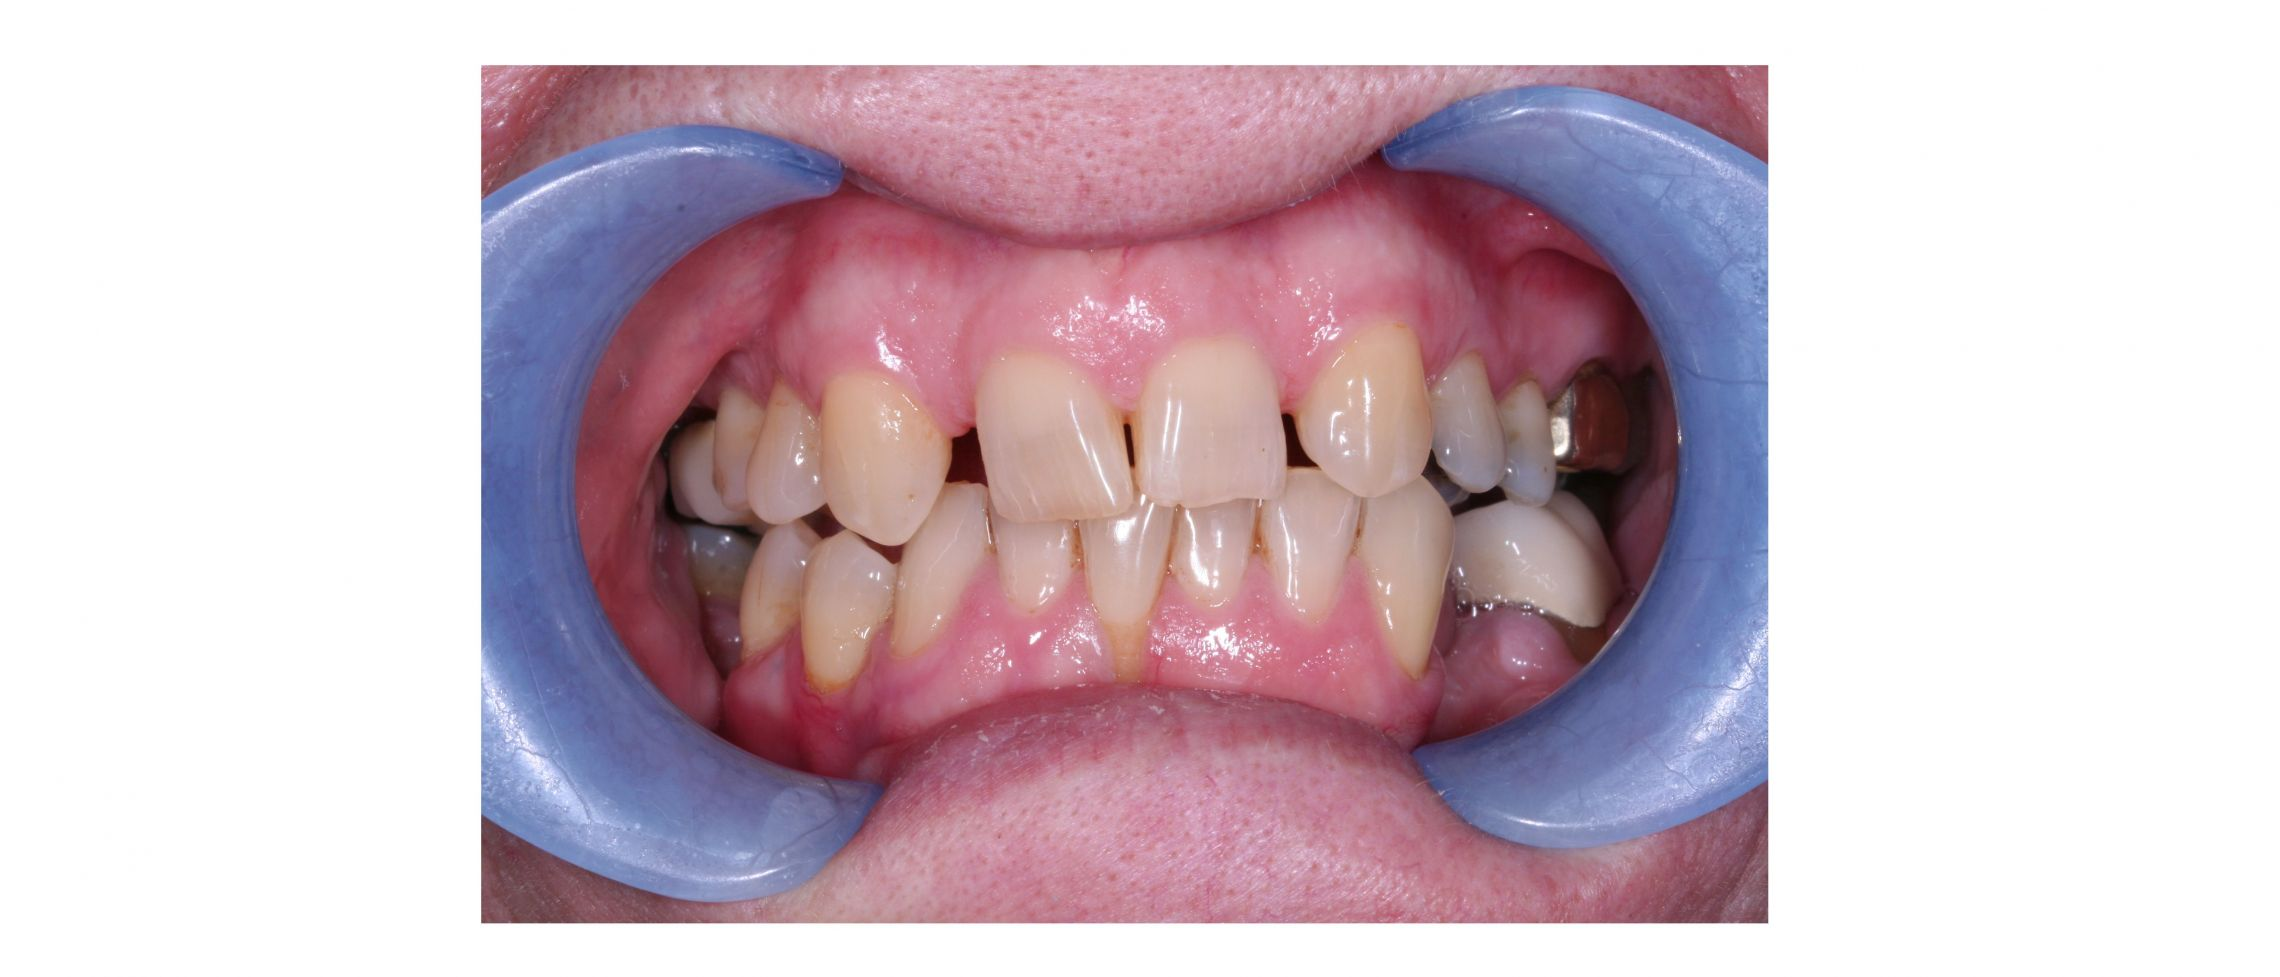 case7 - before treatment